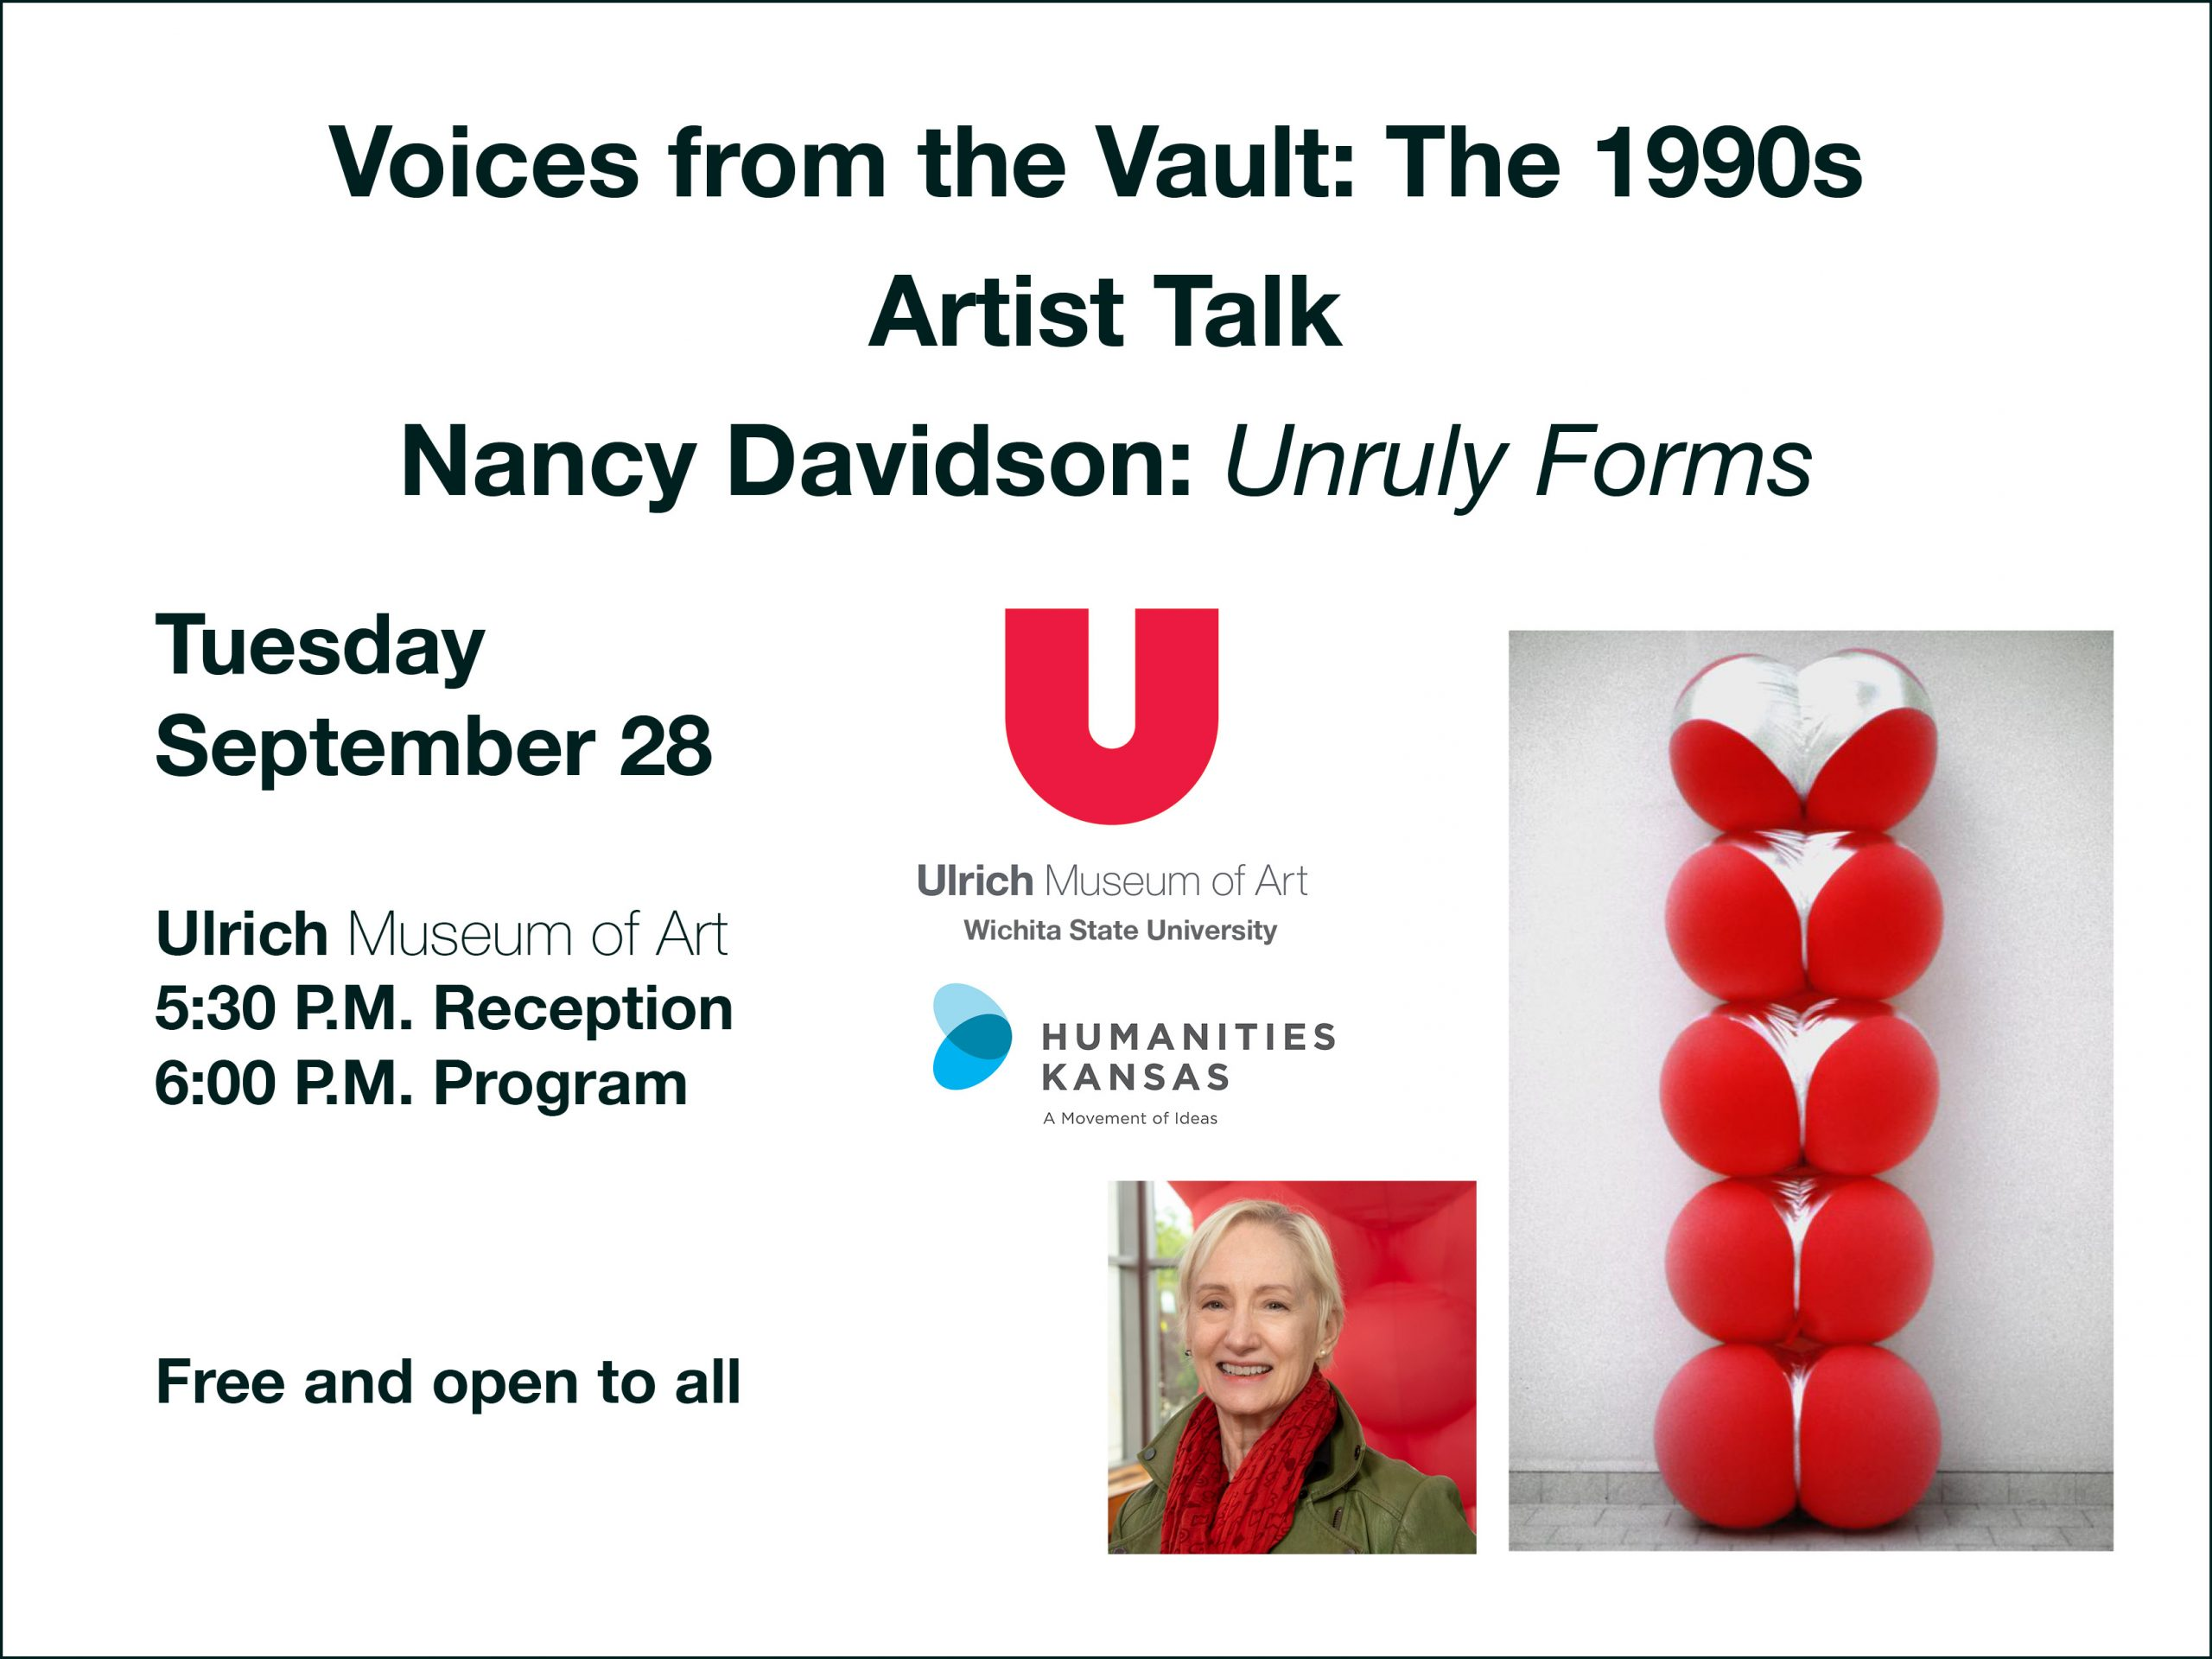 Voices from the Vault. Artist Talk. Nancy Davidson, Unruly Forms. Ulrich Museum of Art. Tuesday September 28. 5:30 P.M. Reception. 6:00 P.M. Program. Free and open to all.